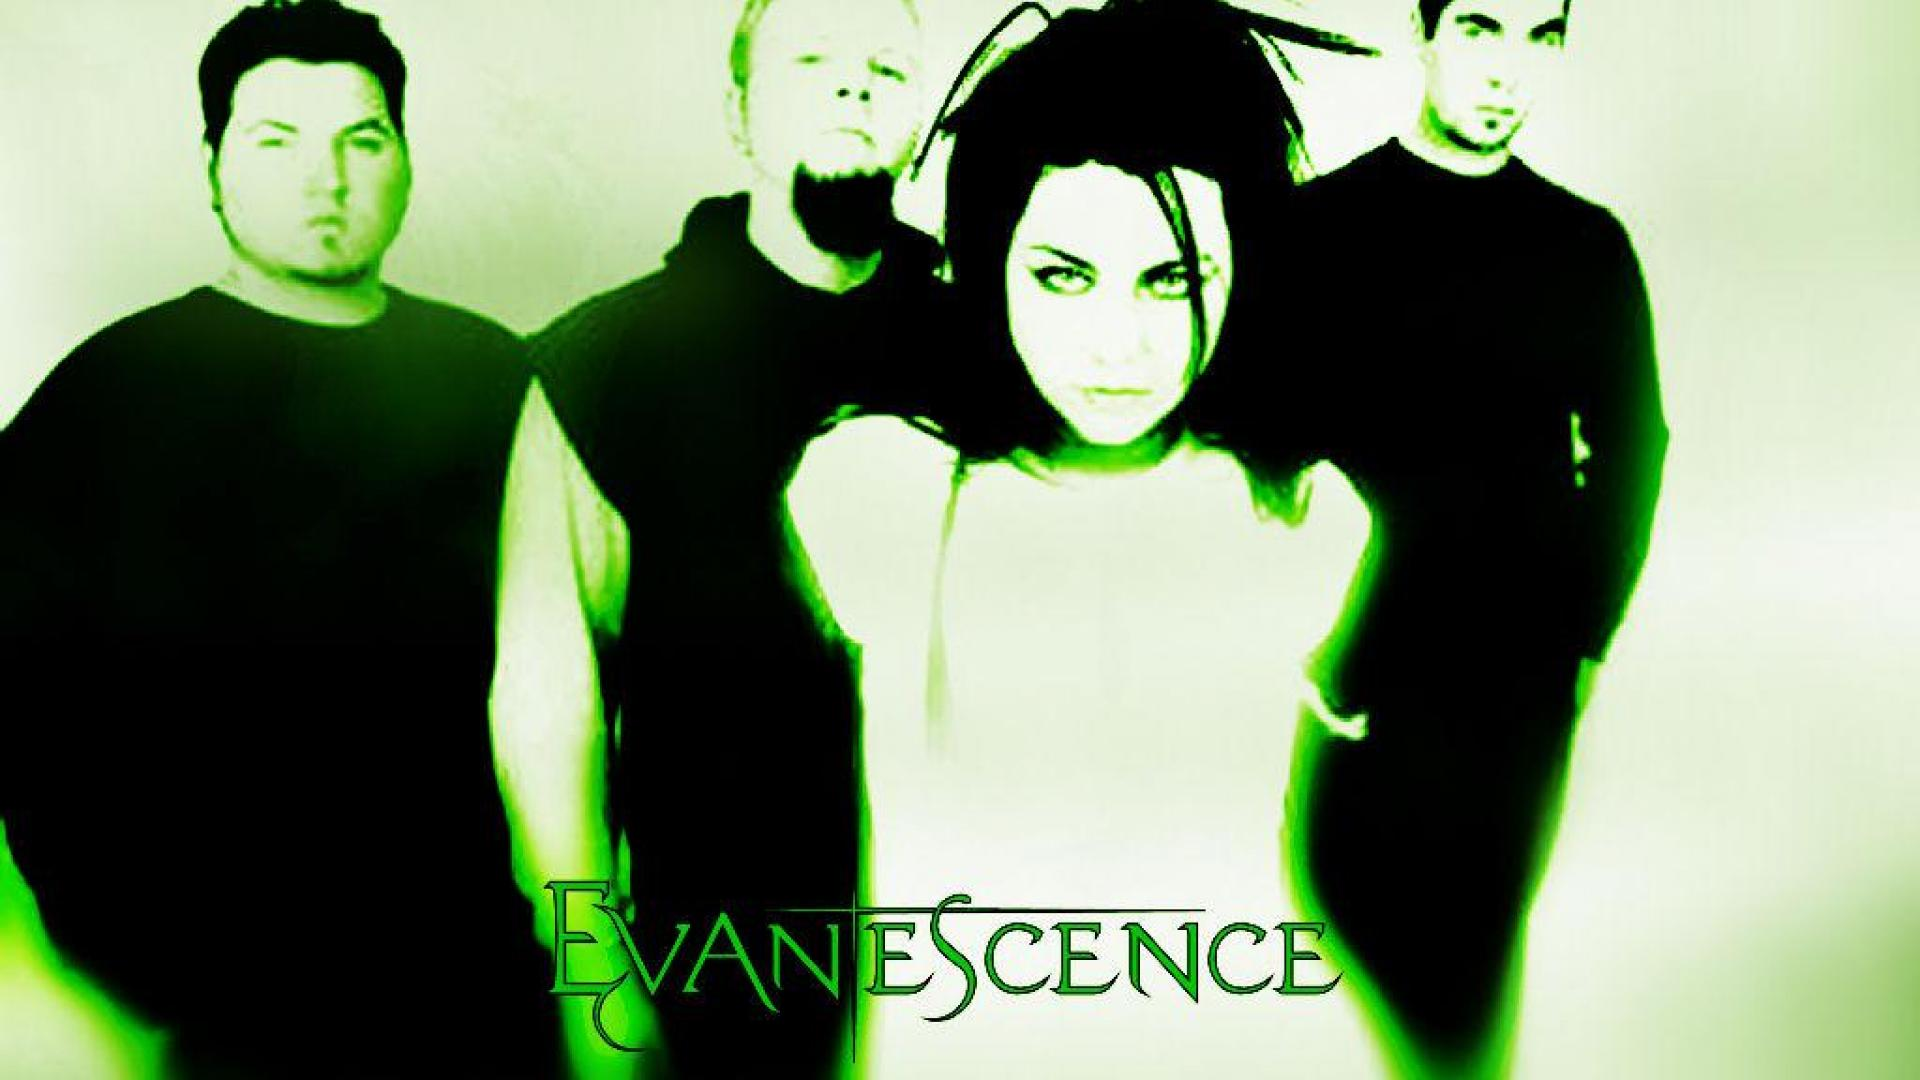 evanescence wallpaper   39761   HQ Desktop Wallpapers   [HD4desktop 1920x1080